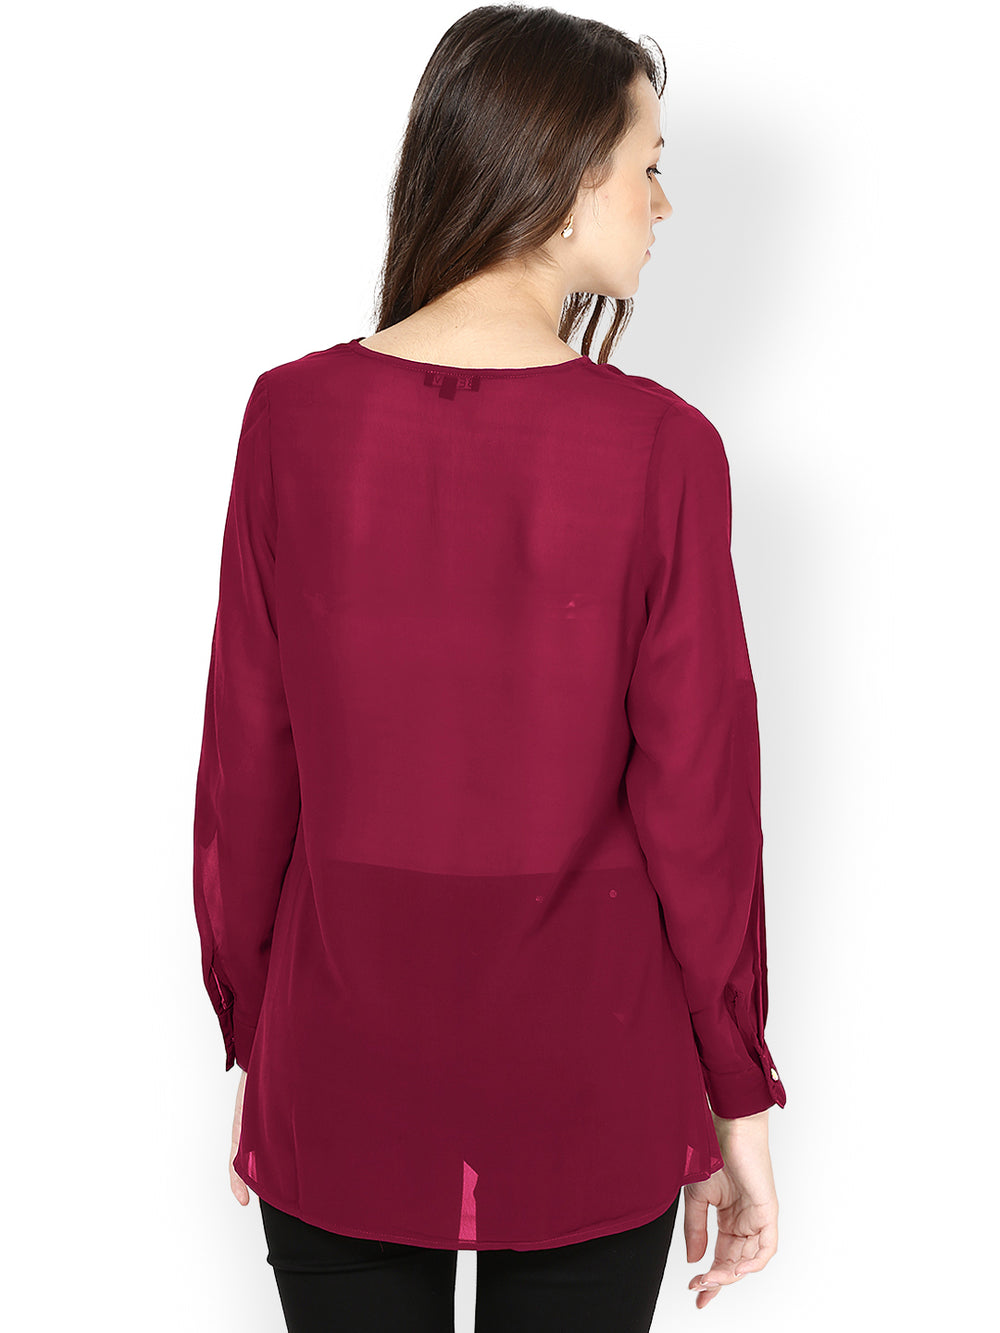 Besiva Dark Pink Top